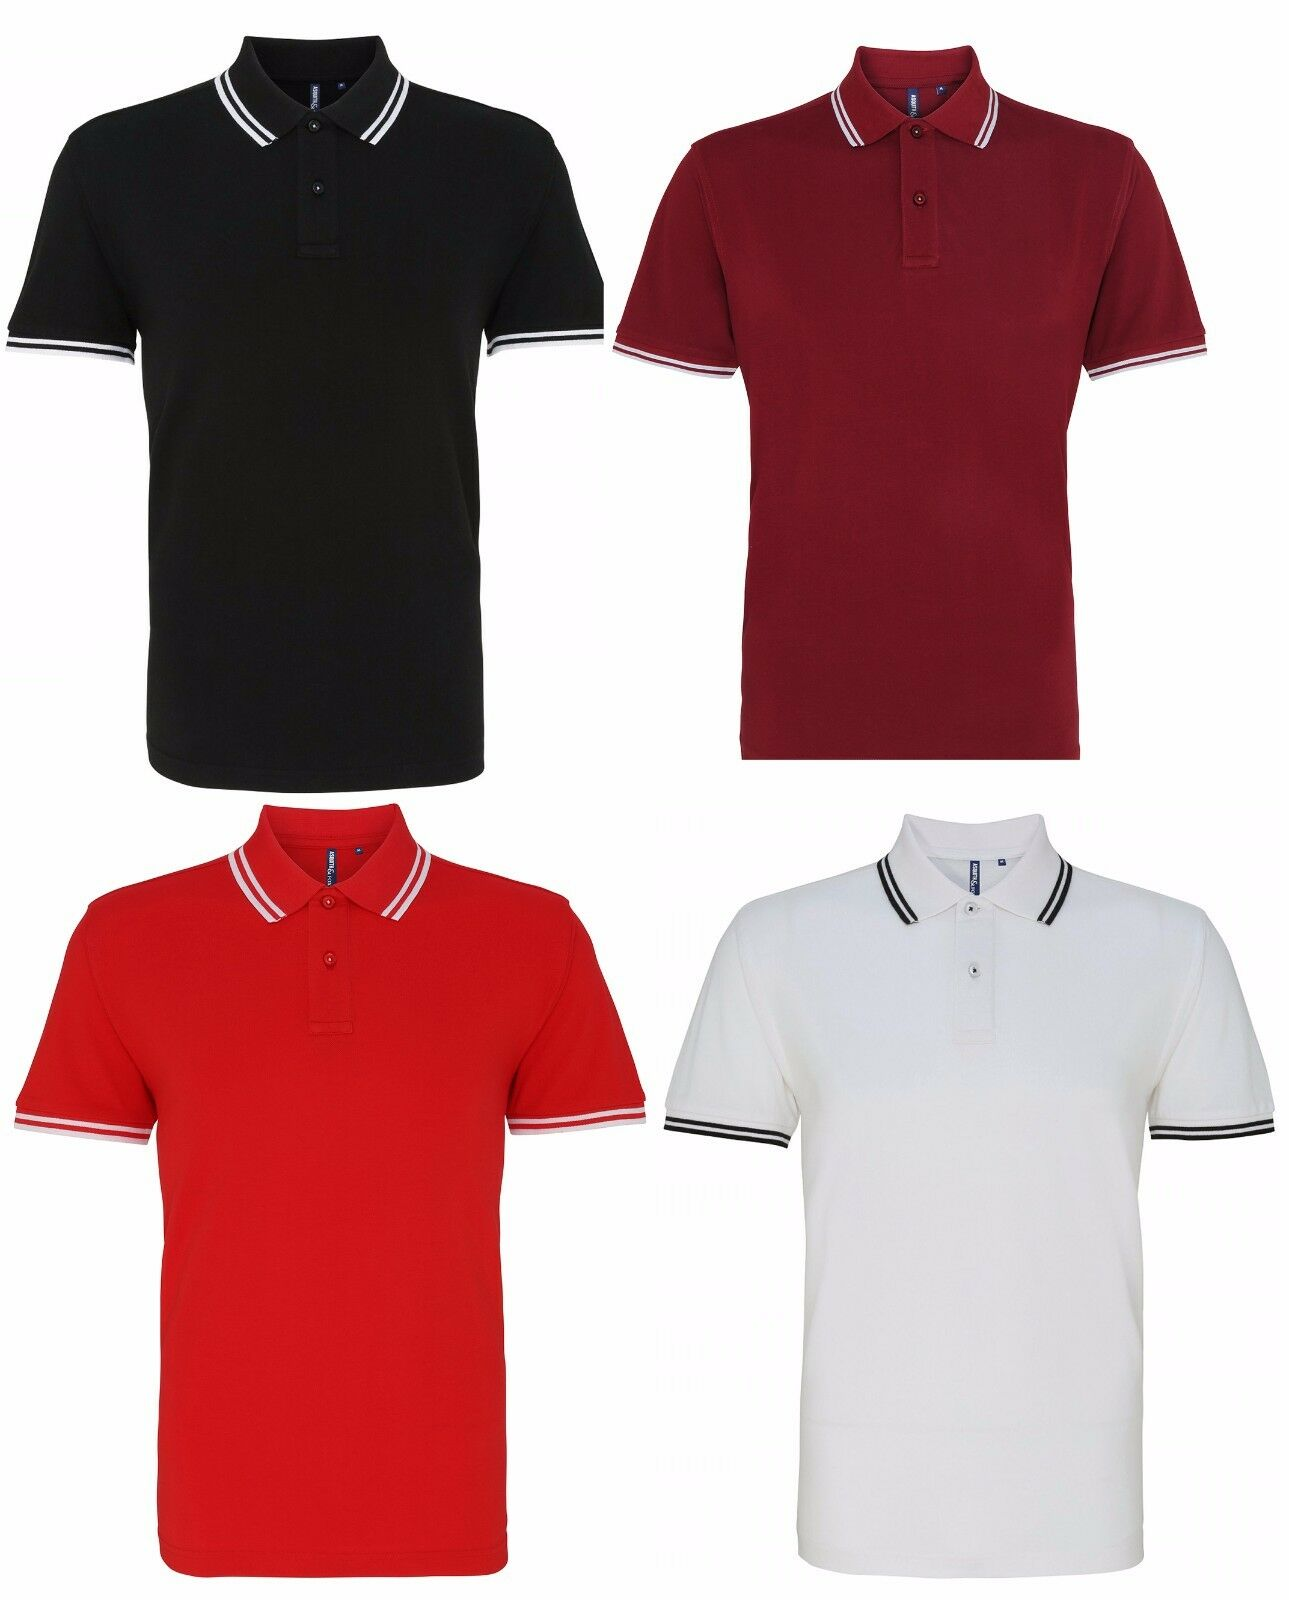 Asquith & Fox Men's Classic Fit Short Sleeve Twin Tipped Top